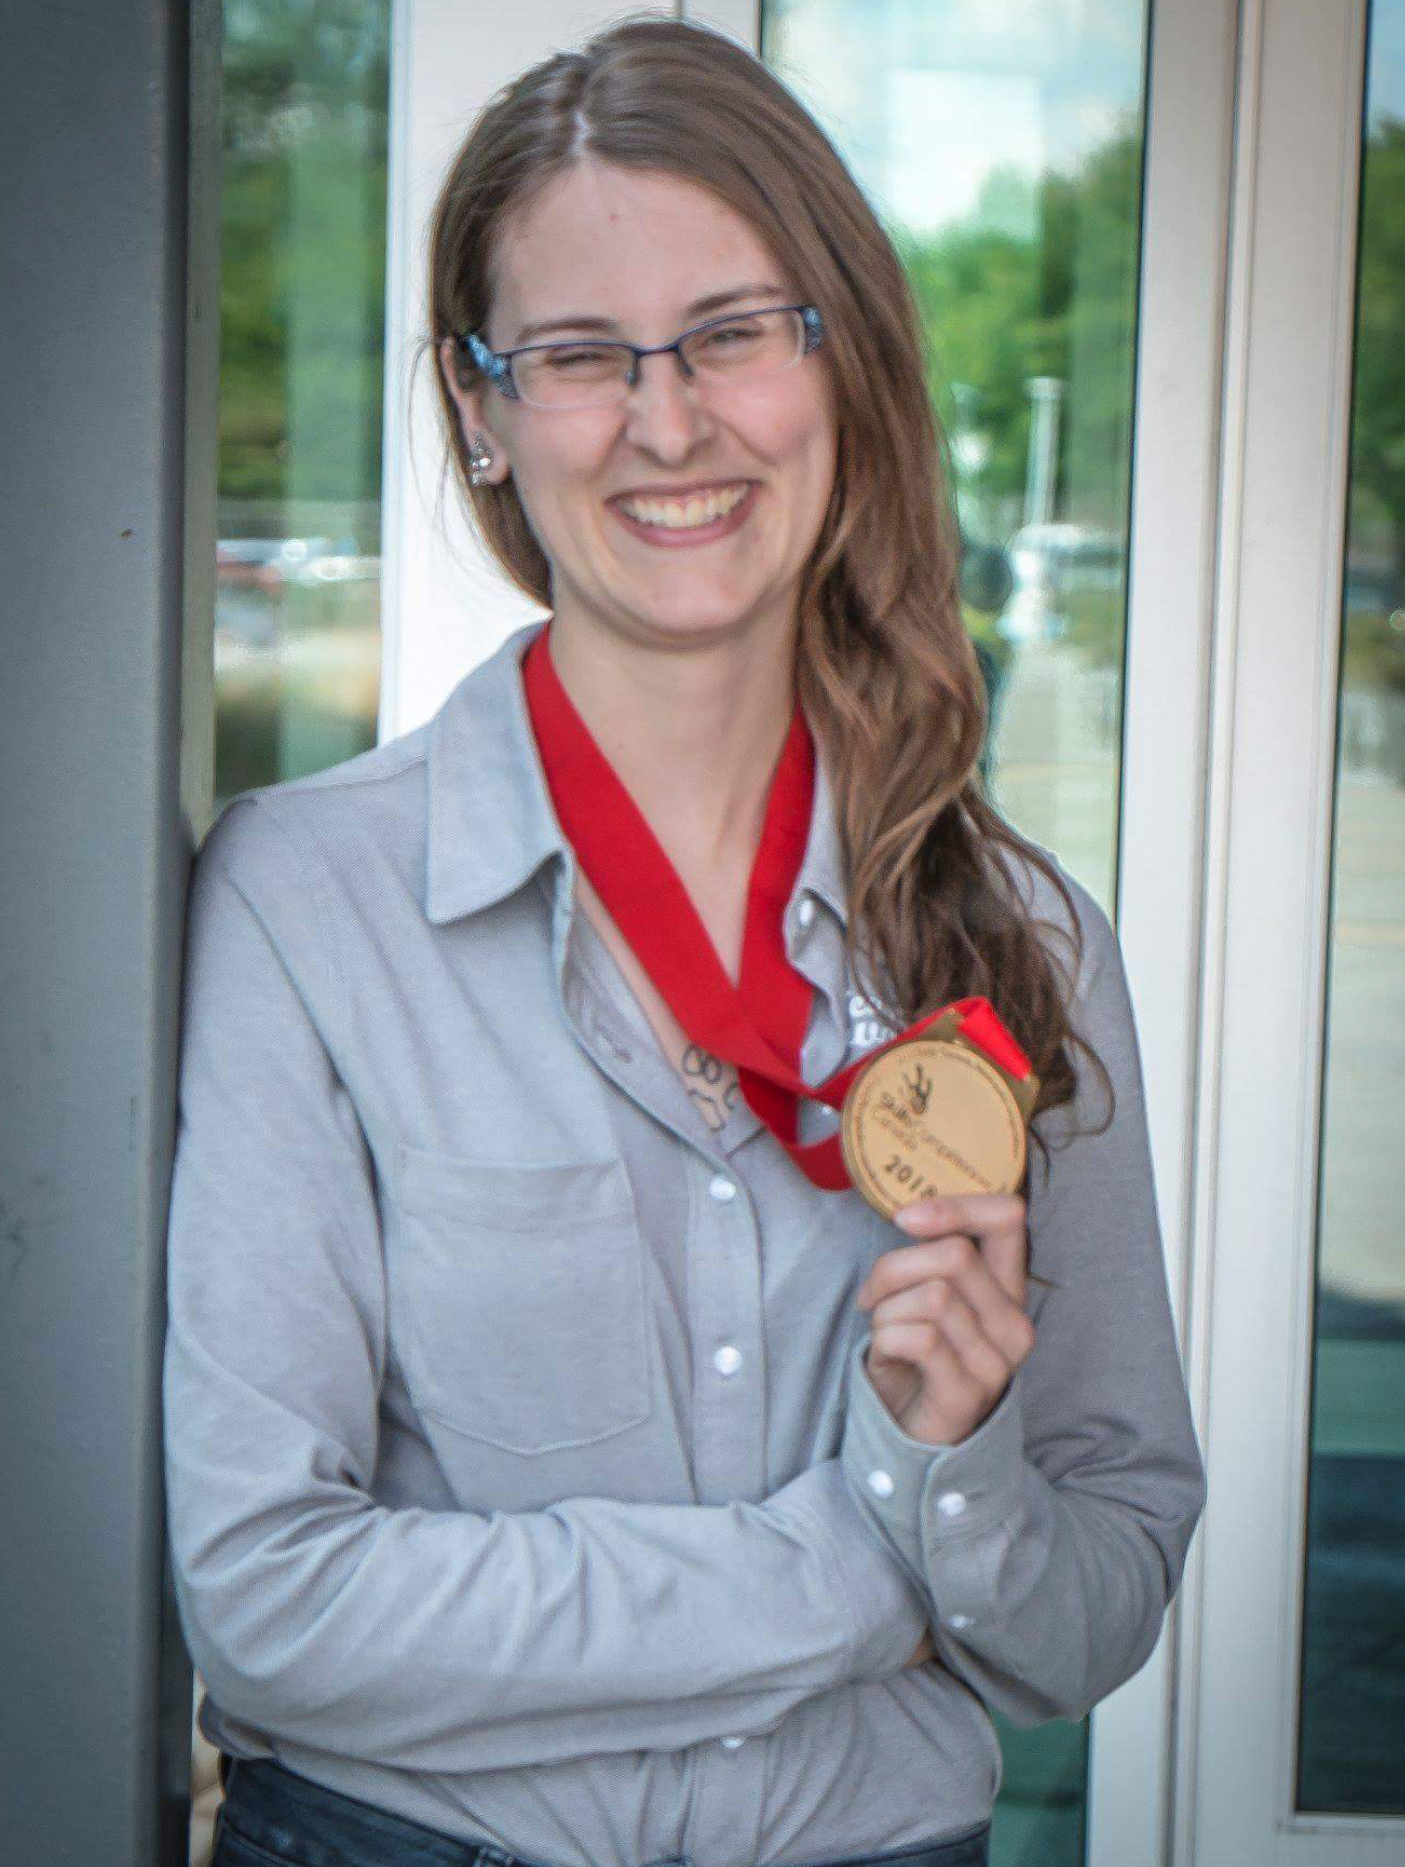 Nicole Hamilton with Gold Medal